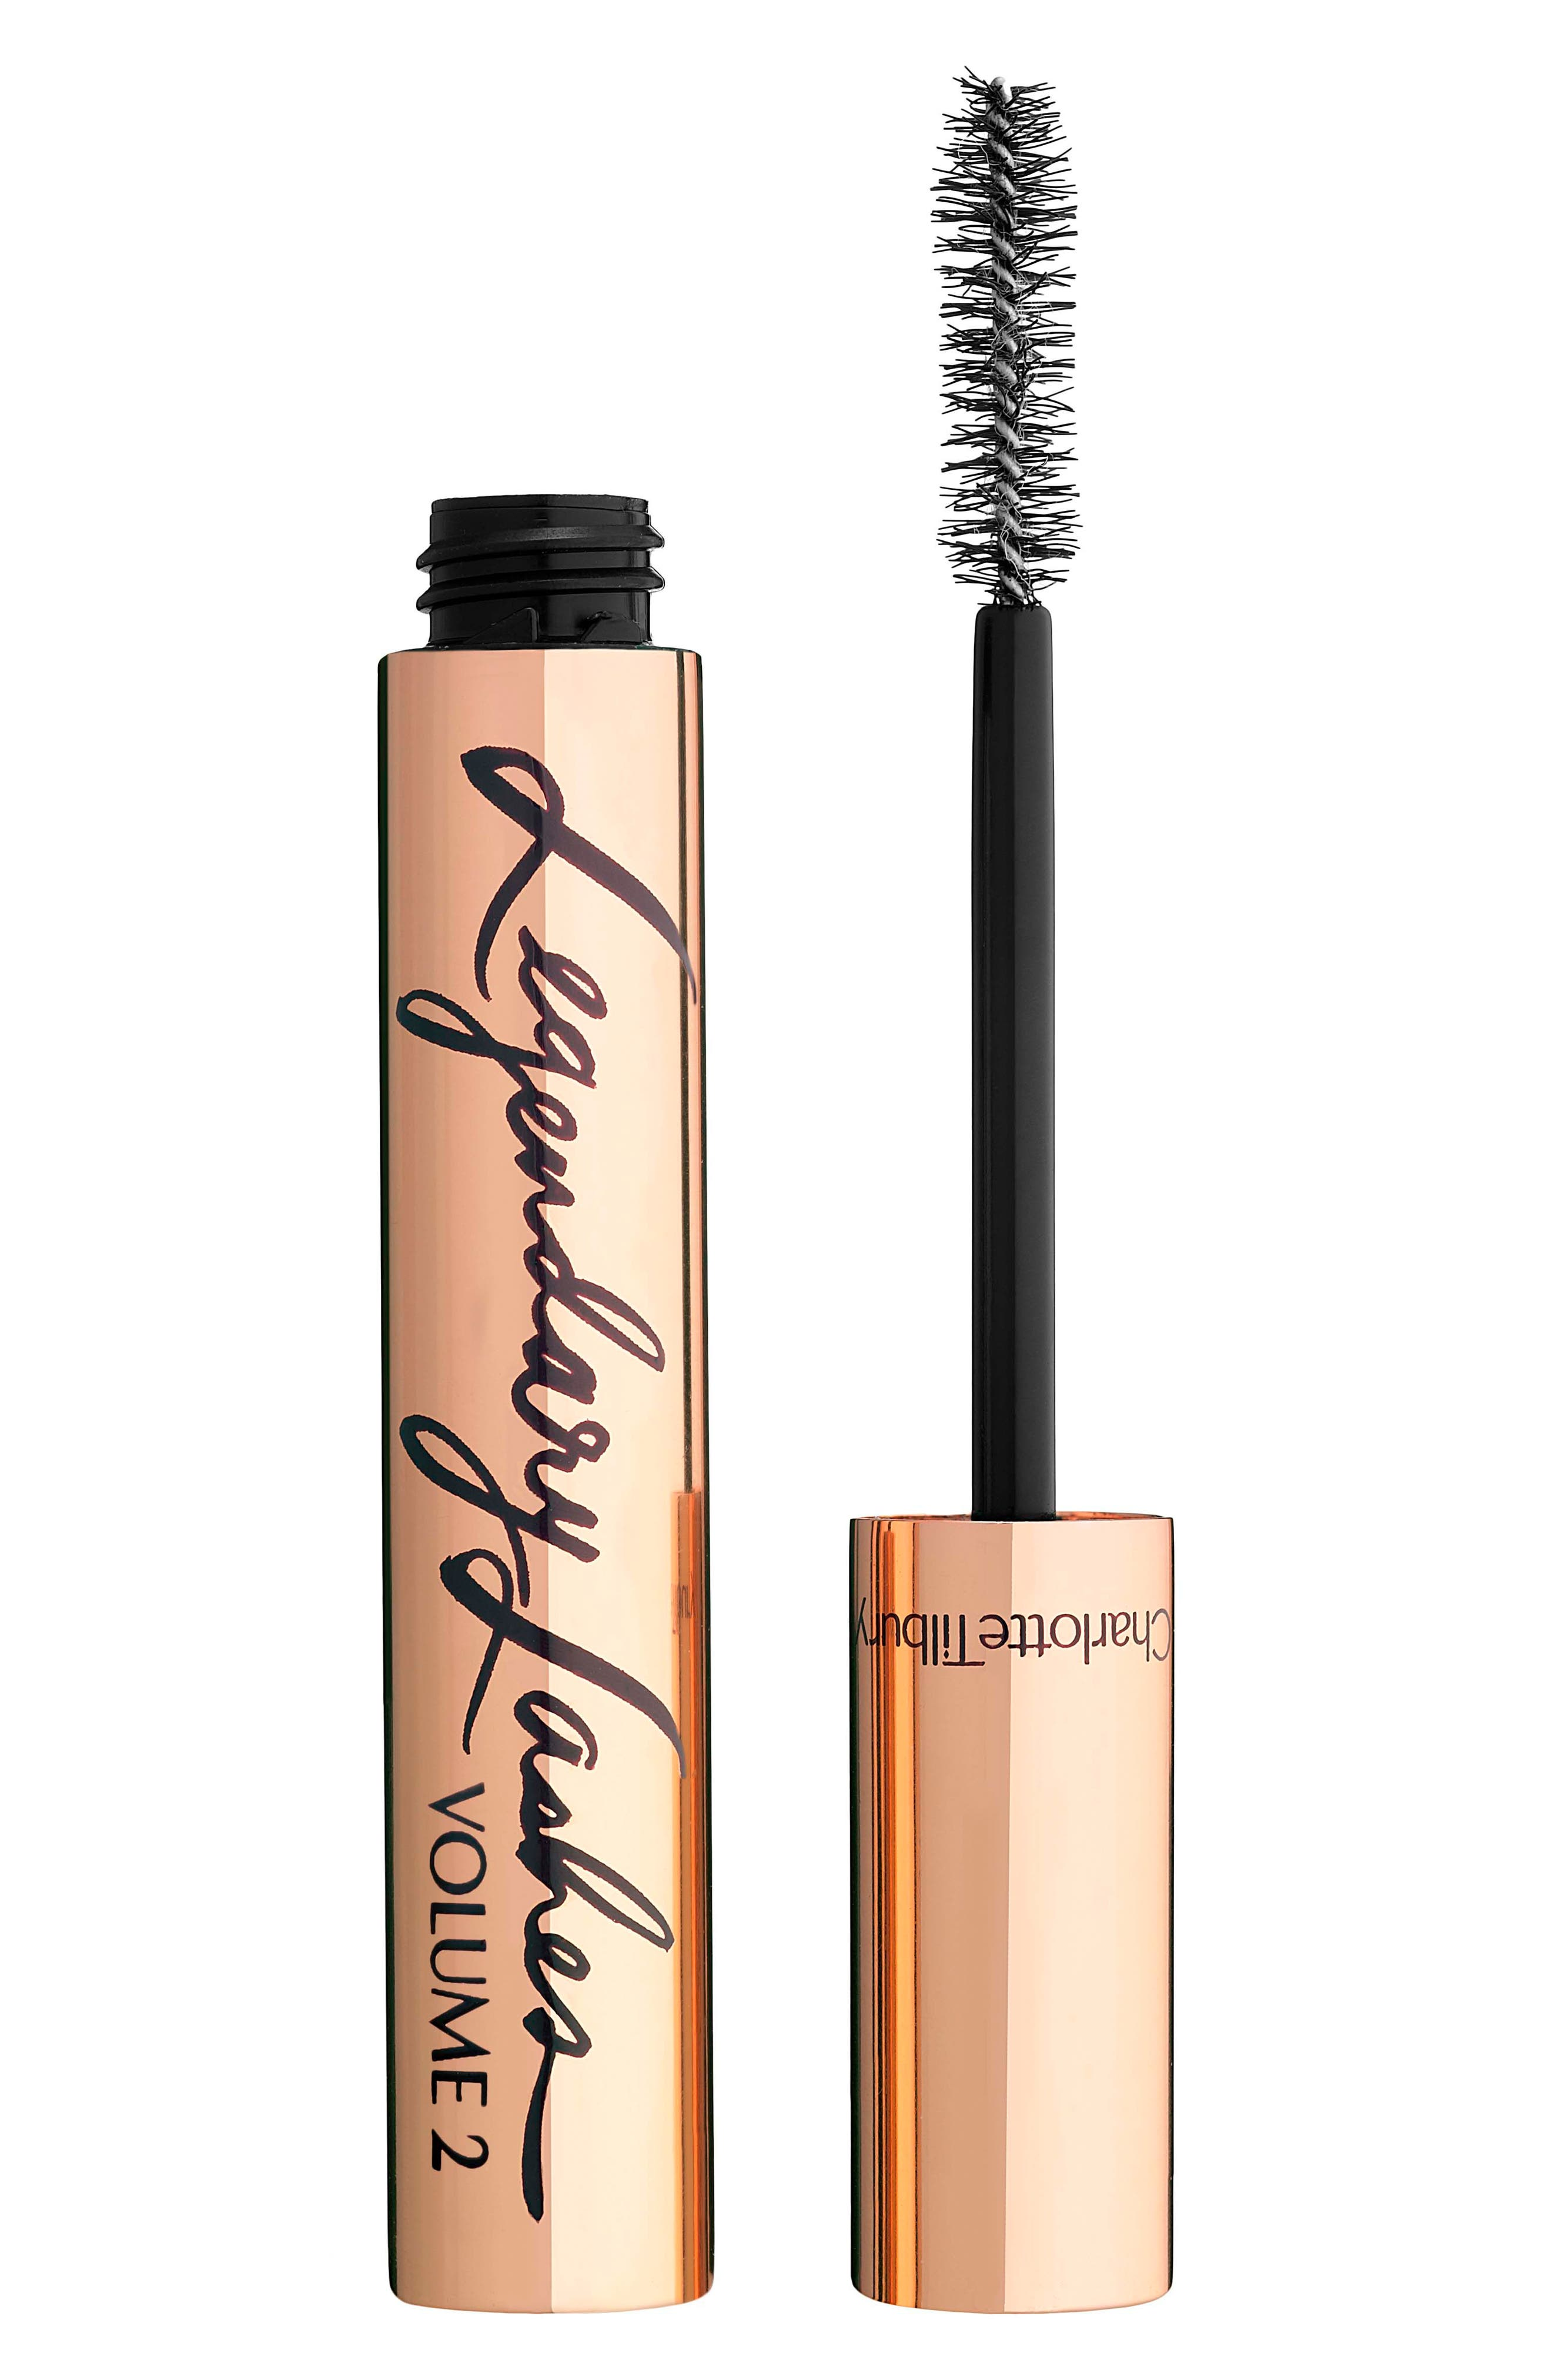 Charlotte Tilbury Legendary Lashes Volume 2 Mascara